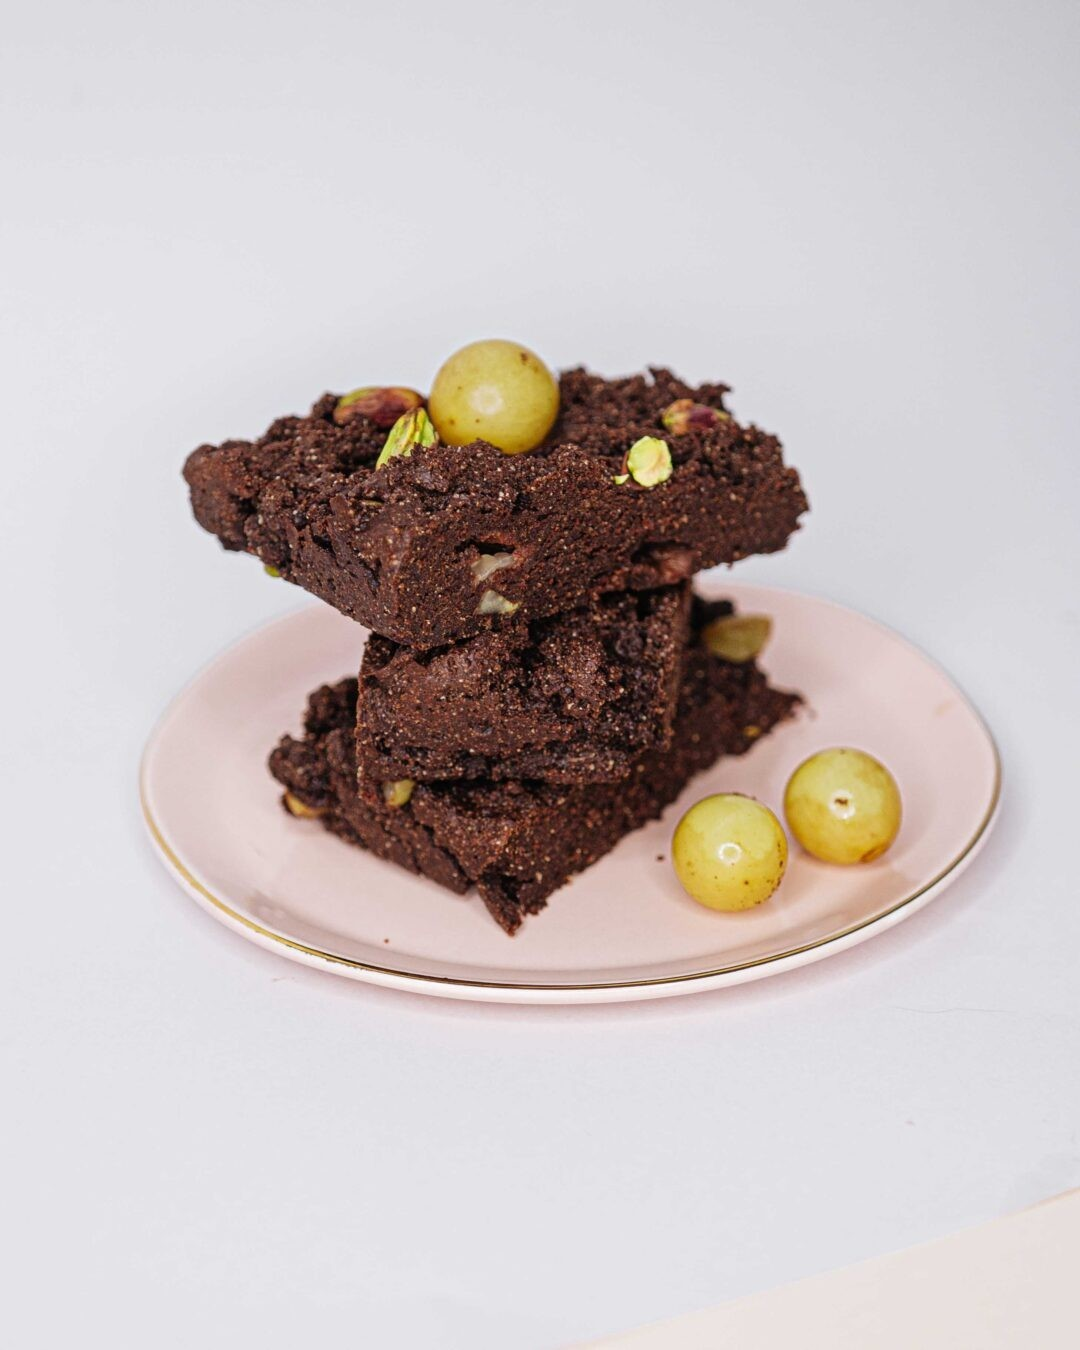 Brownie de chocolate con pistacho y uvas